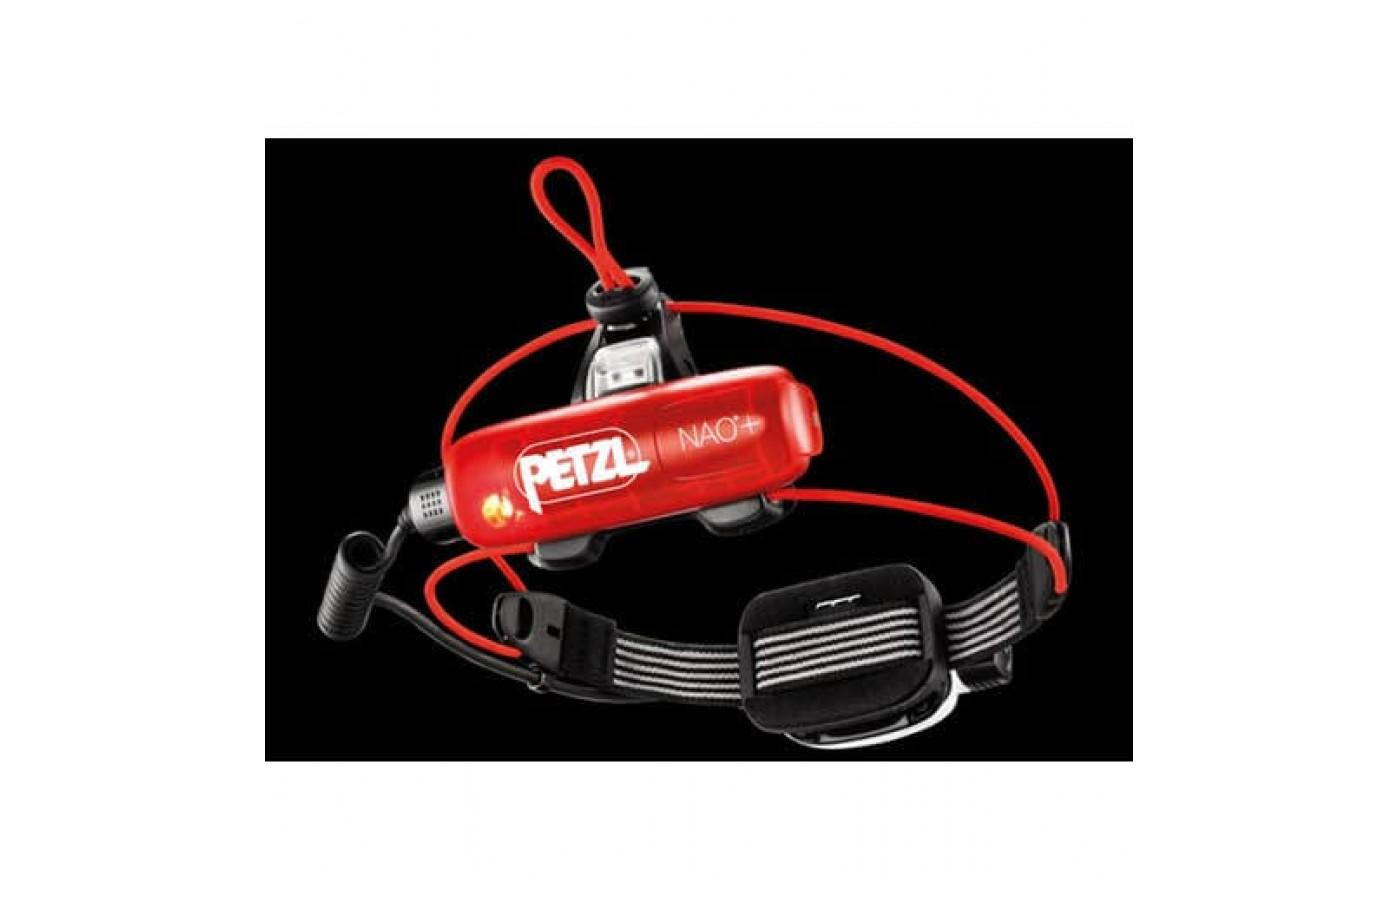 The Petzl NAO+ Headlamp works with the MyPetzl Light app on Android or Apple devices.